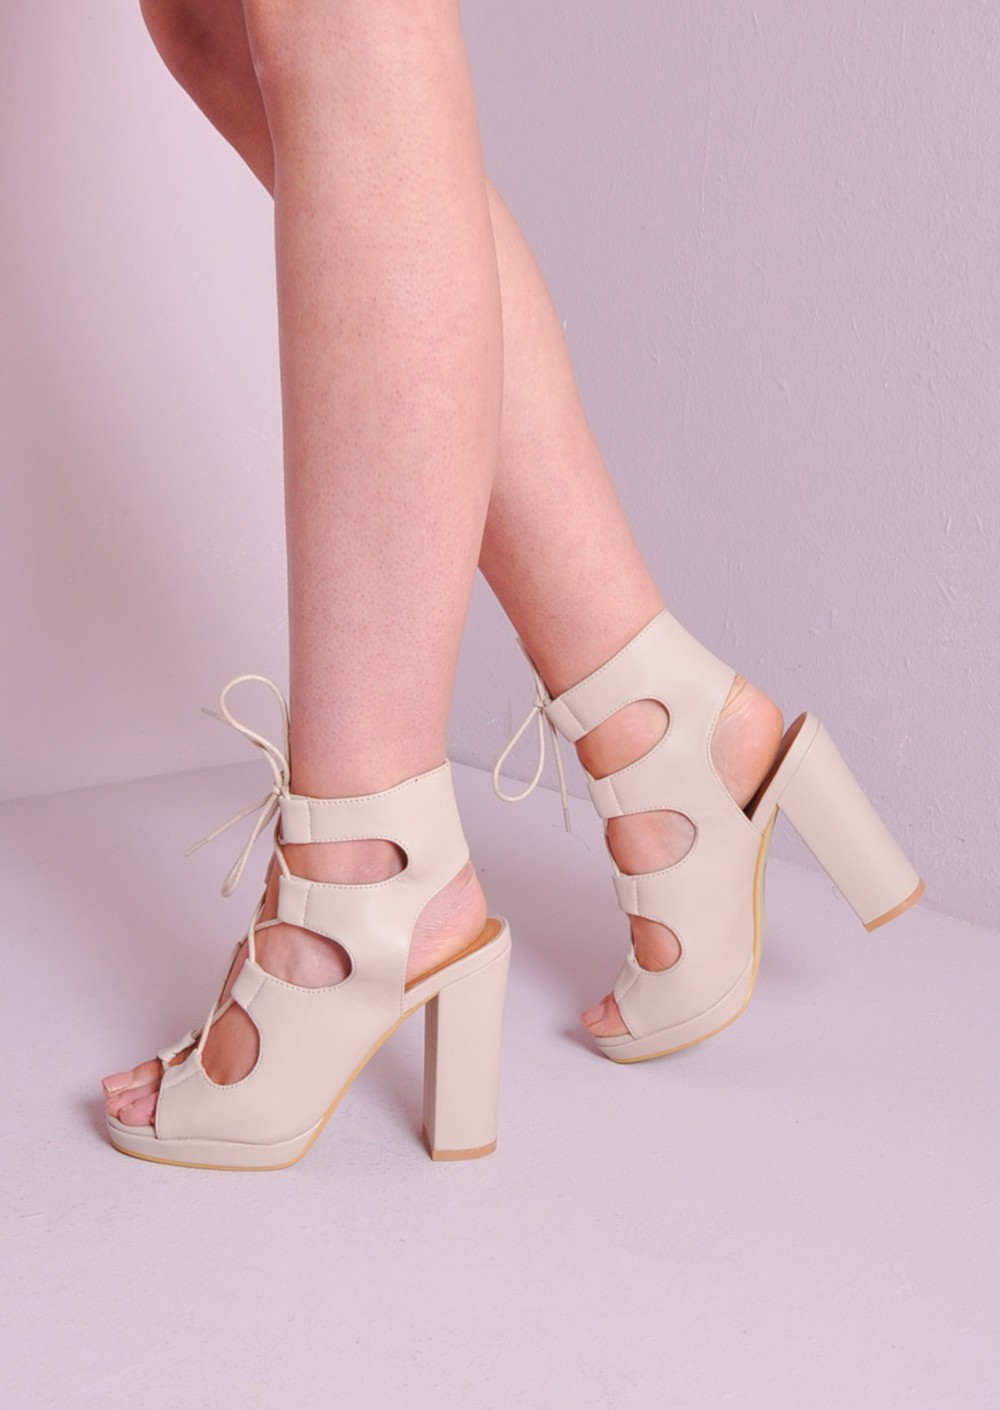 Lace Up Gladiator Block Platform Heel Sandals Shoes Nude